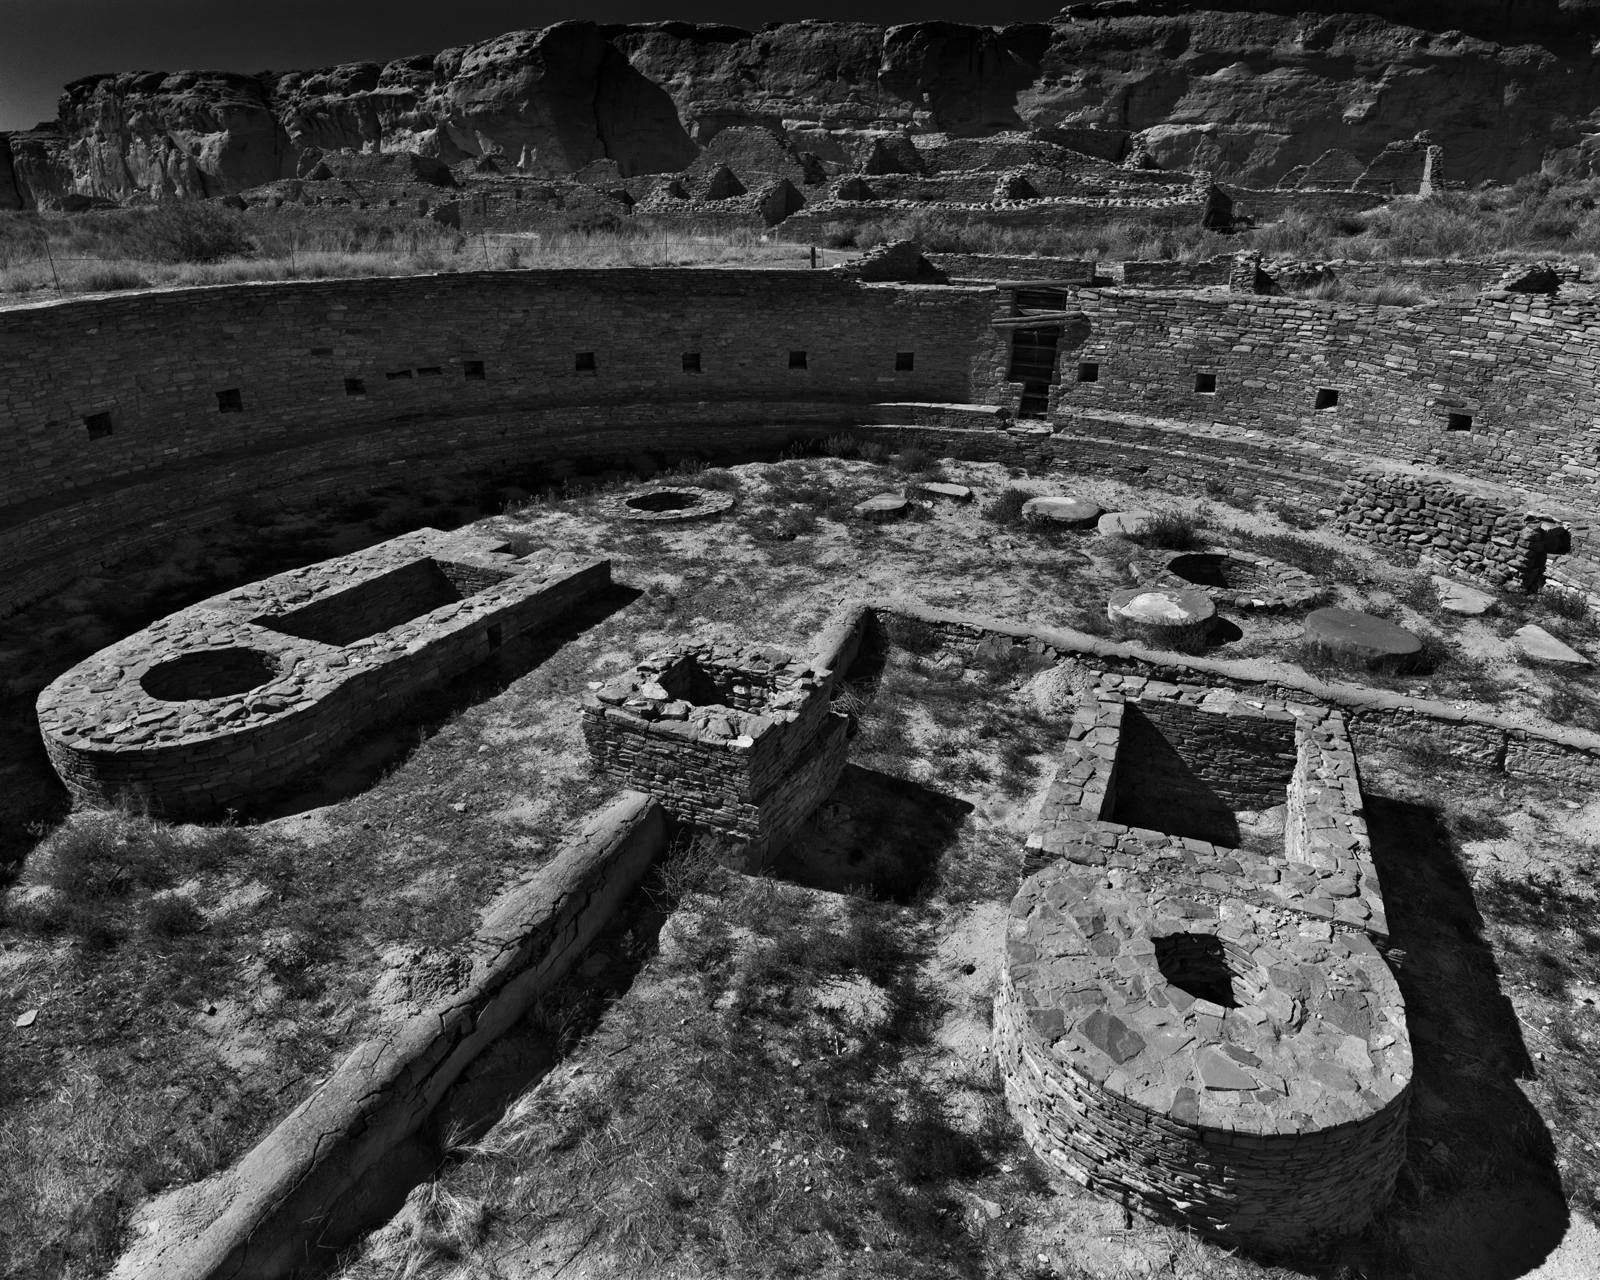 Chetro Ketl Great Kiva- Chaco Culture National Historical Park, New Mexico